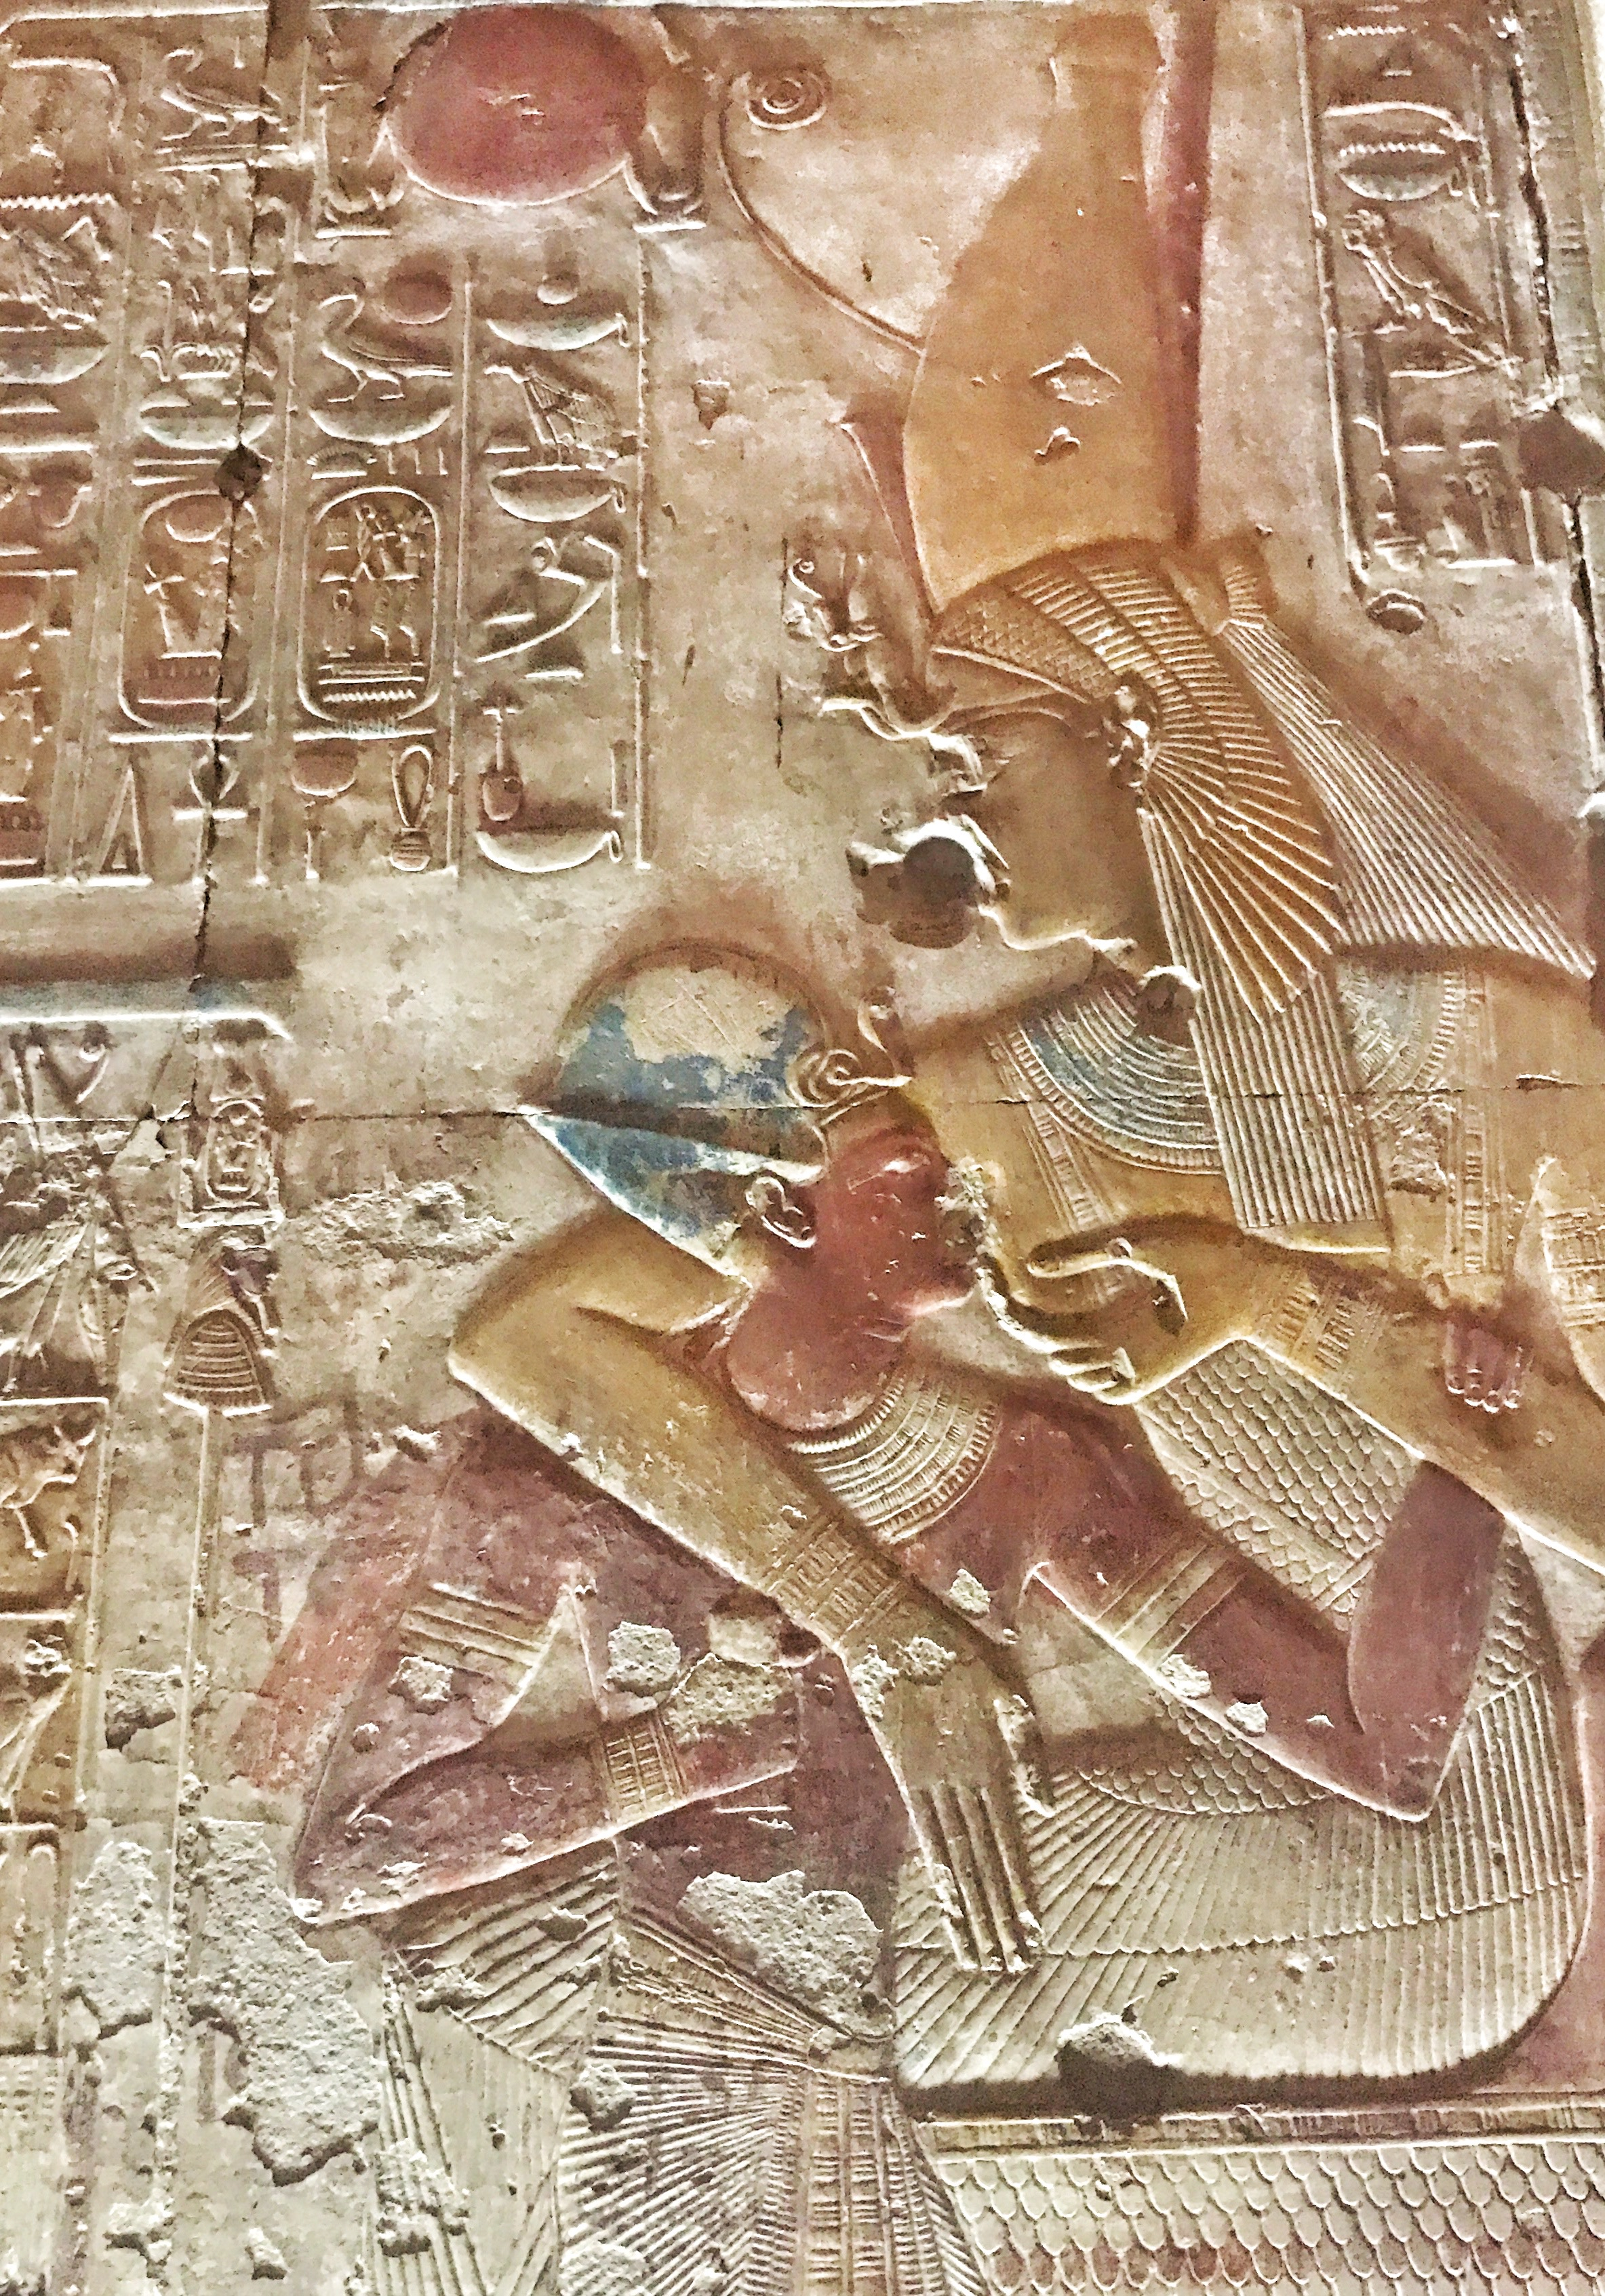 Isn't he getting a bit old for that? Horus suckles on his mother Isis' breast